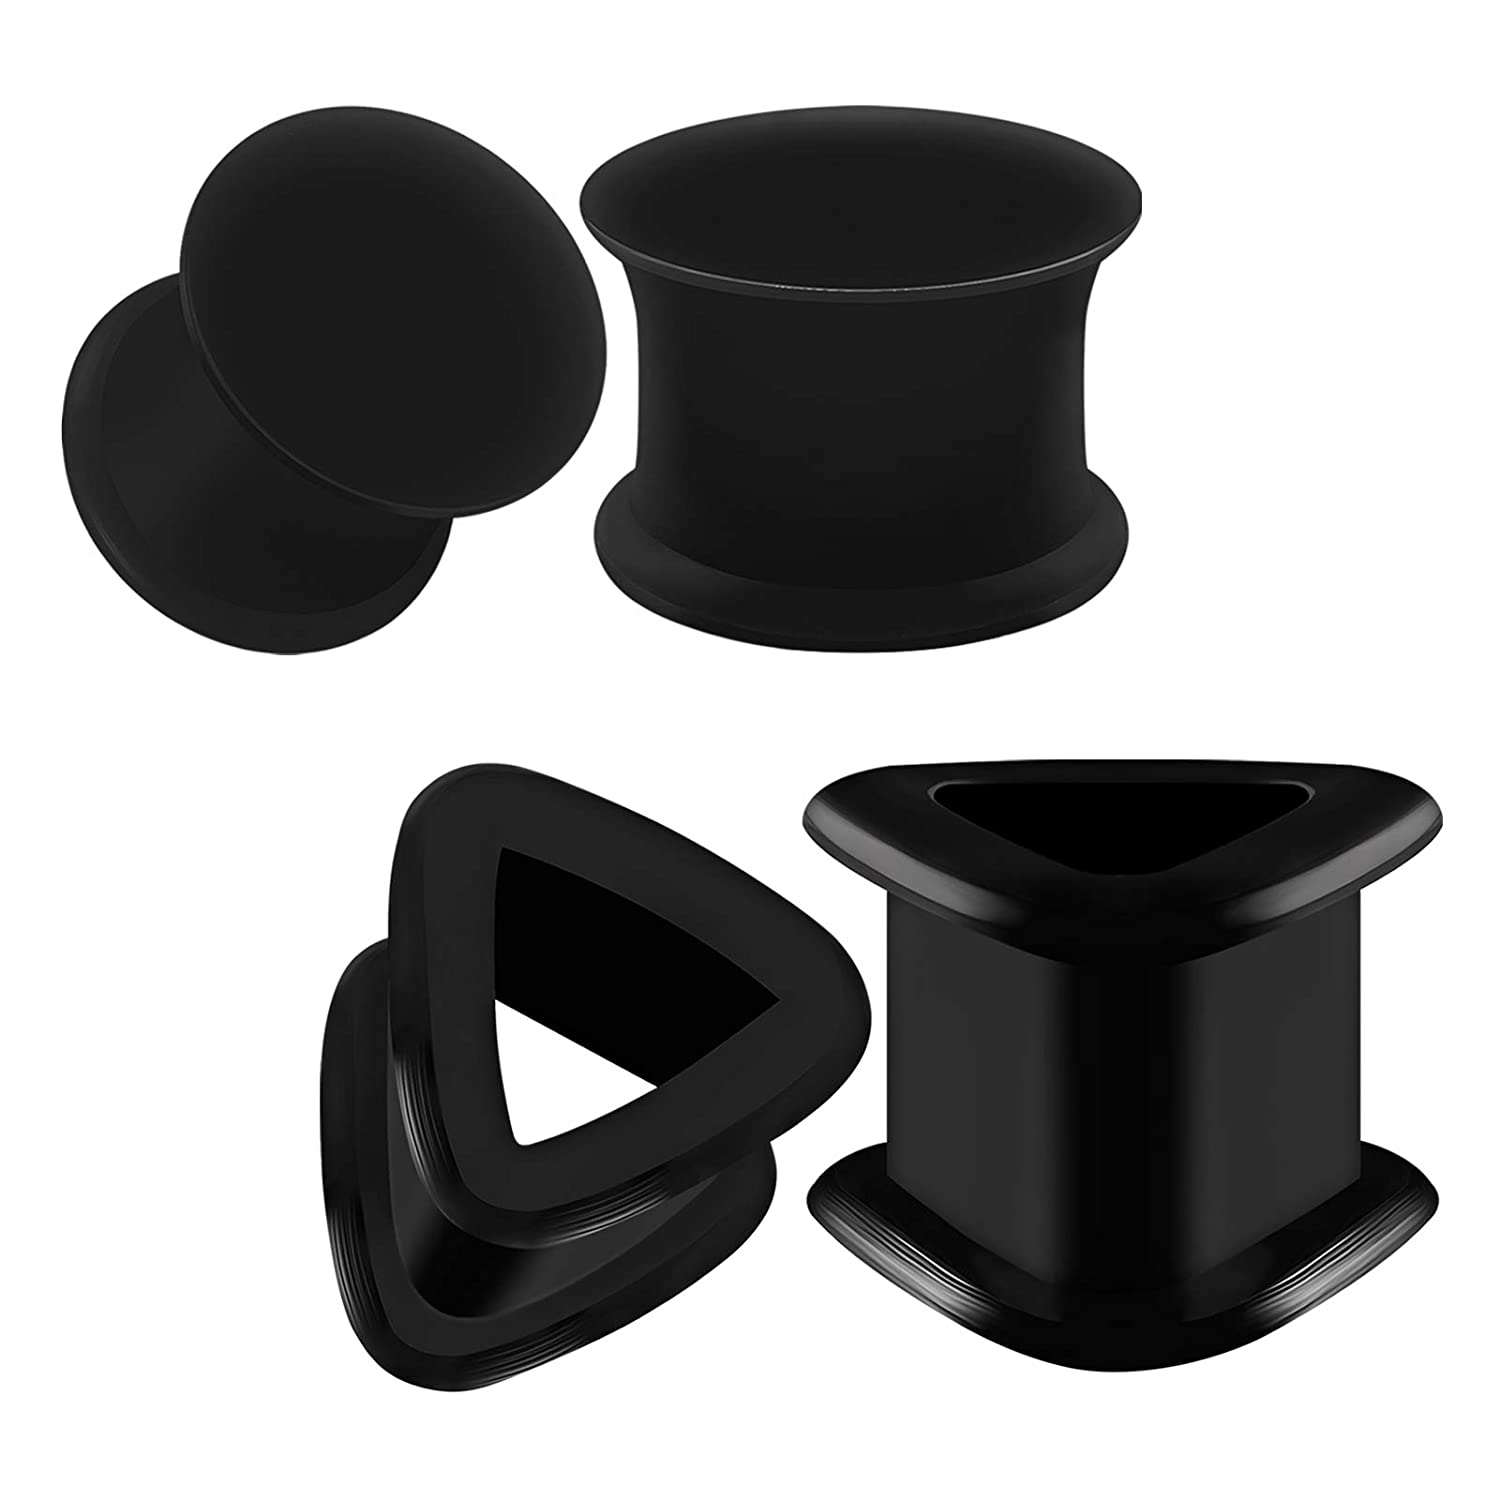 Flesh Tunnels Soft Silicone Great For Every Day Black Big Gauges